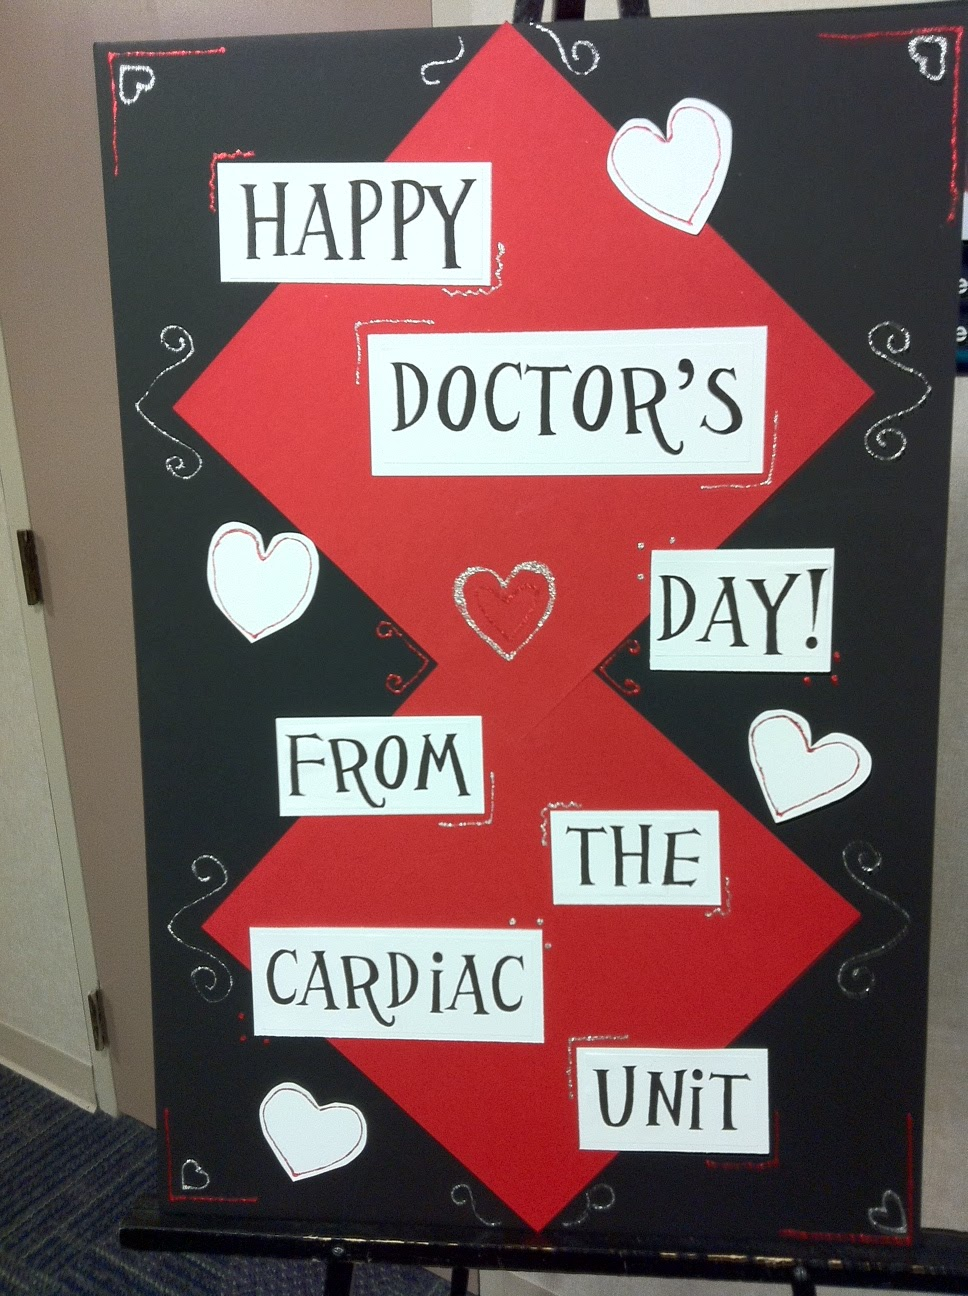 Happy Doctor's Day 2011 Celebration Poster